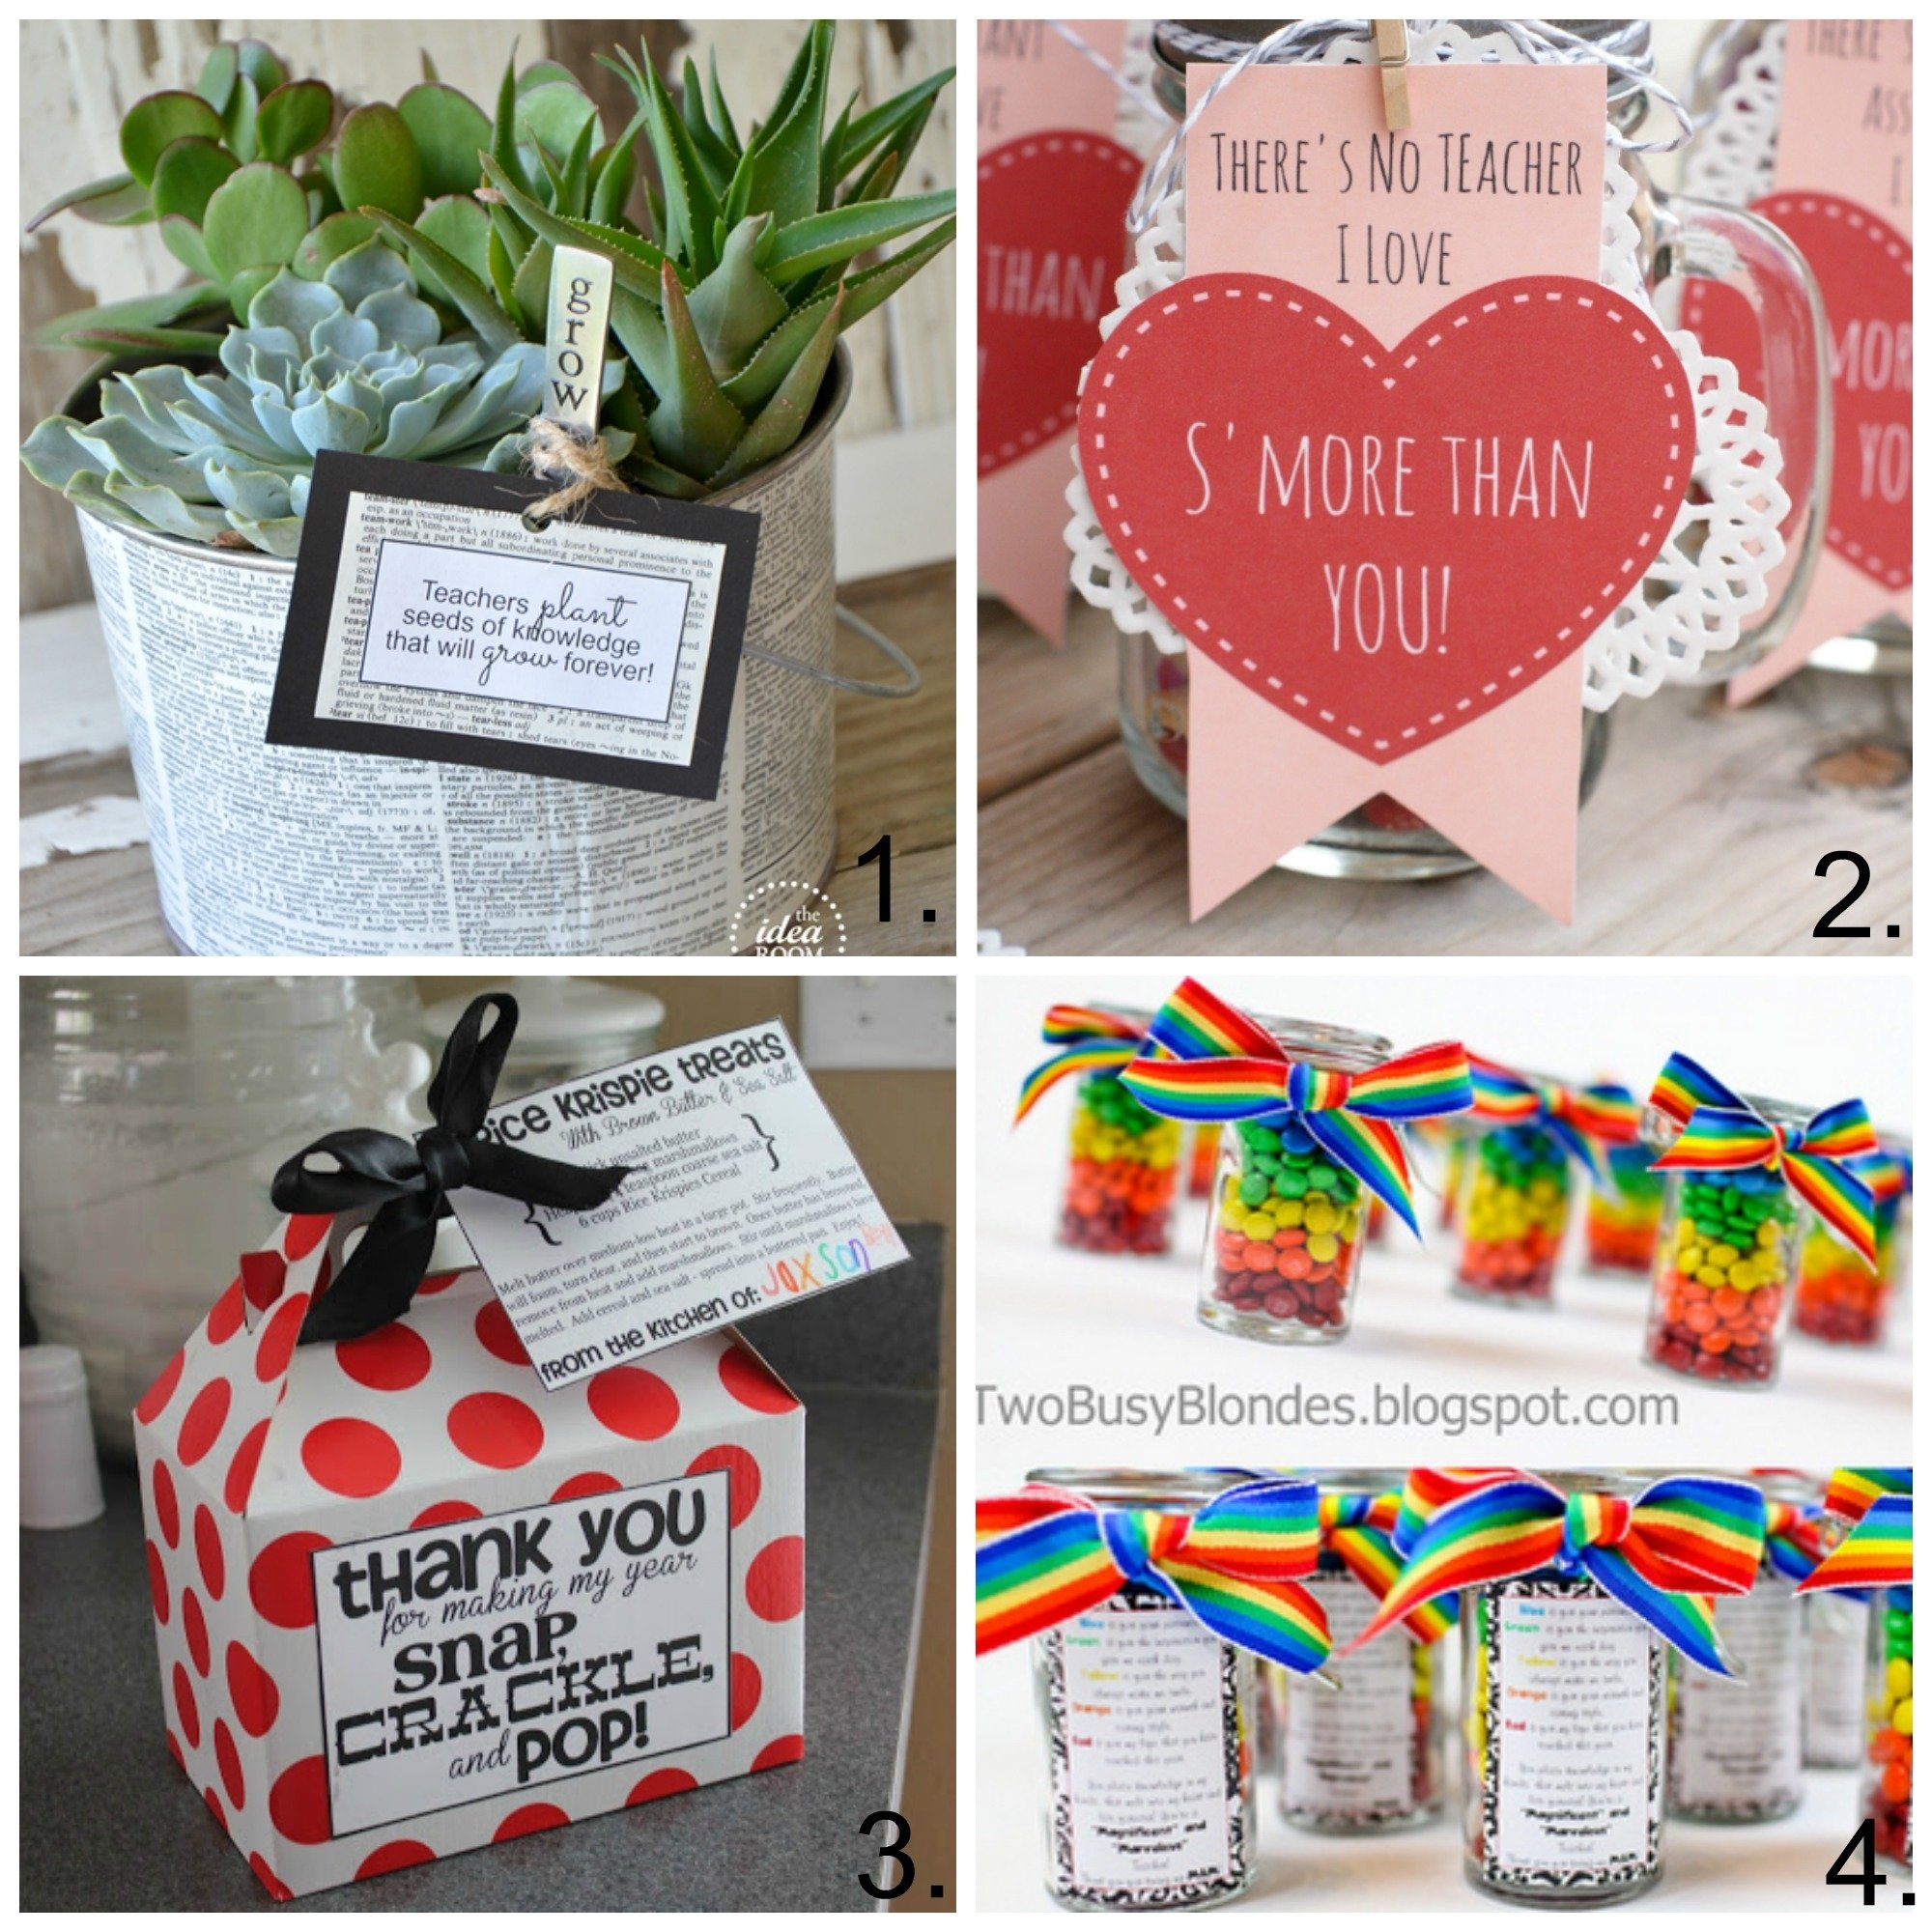 10 Cute Teachers Appreciation Week Gift Ideas 25 awesome teacher appreciation gift ideas my frugal adventures 2 2020